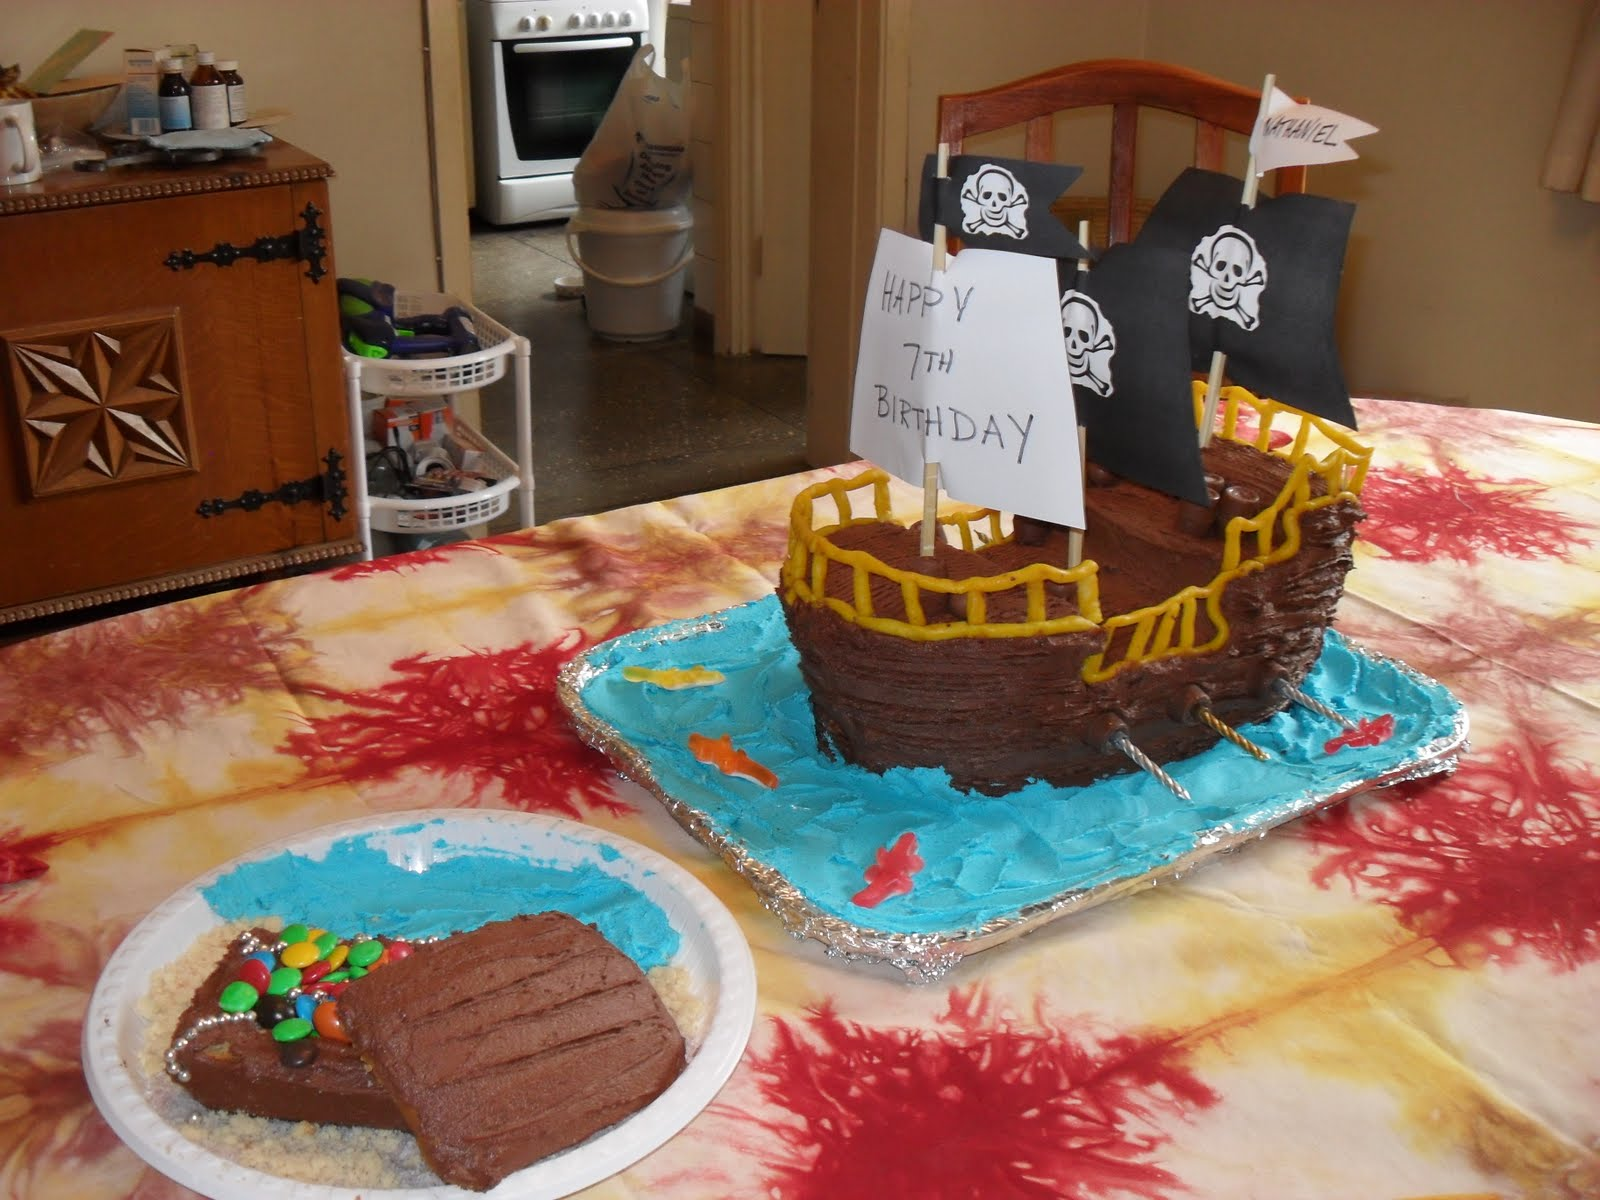 Cake Designs Pirate Ship : Novelty Cake Designs: How to Make a Pirate Ship Cake and ...